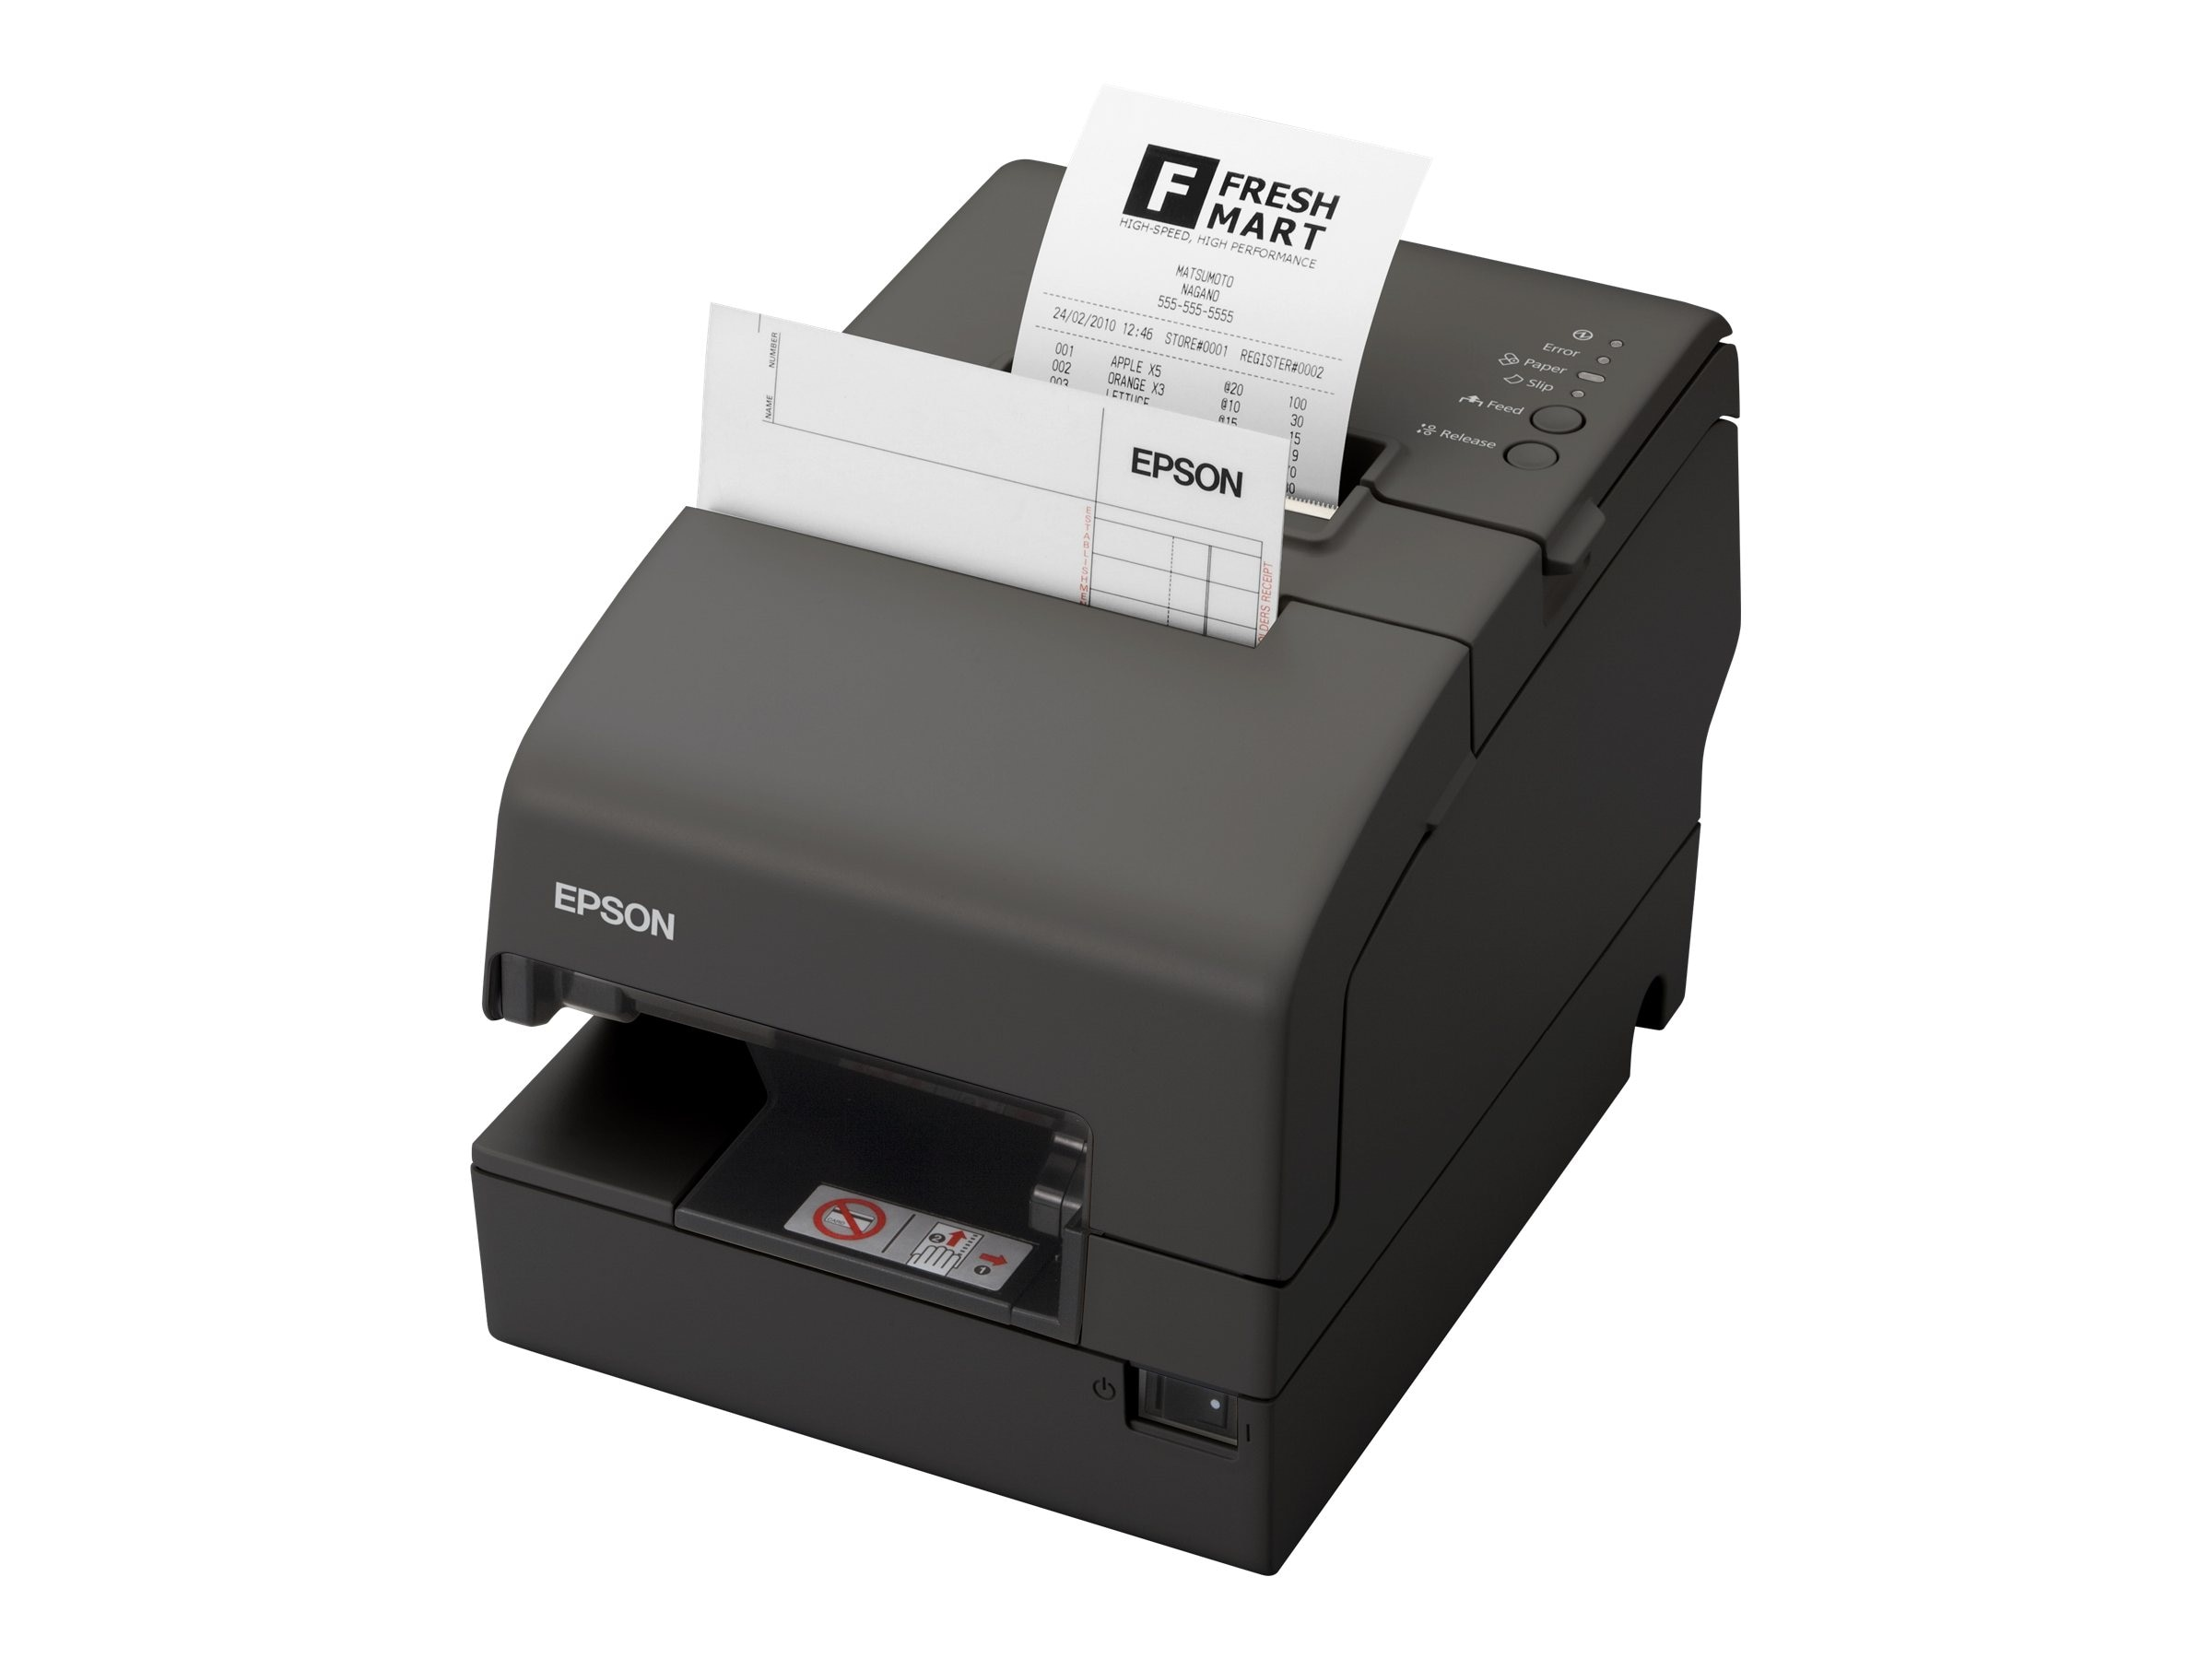 Open Box Epson TM-H6000IV USB Serial Multifunction Printer w  EDG, MICR & Drop-in Validation, C31CB25074, 31635851, Printers - POS Receipt